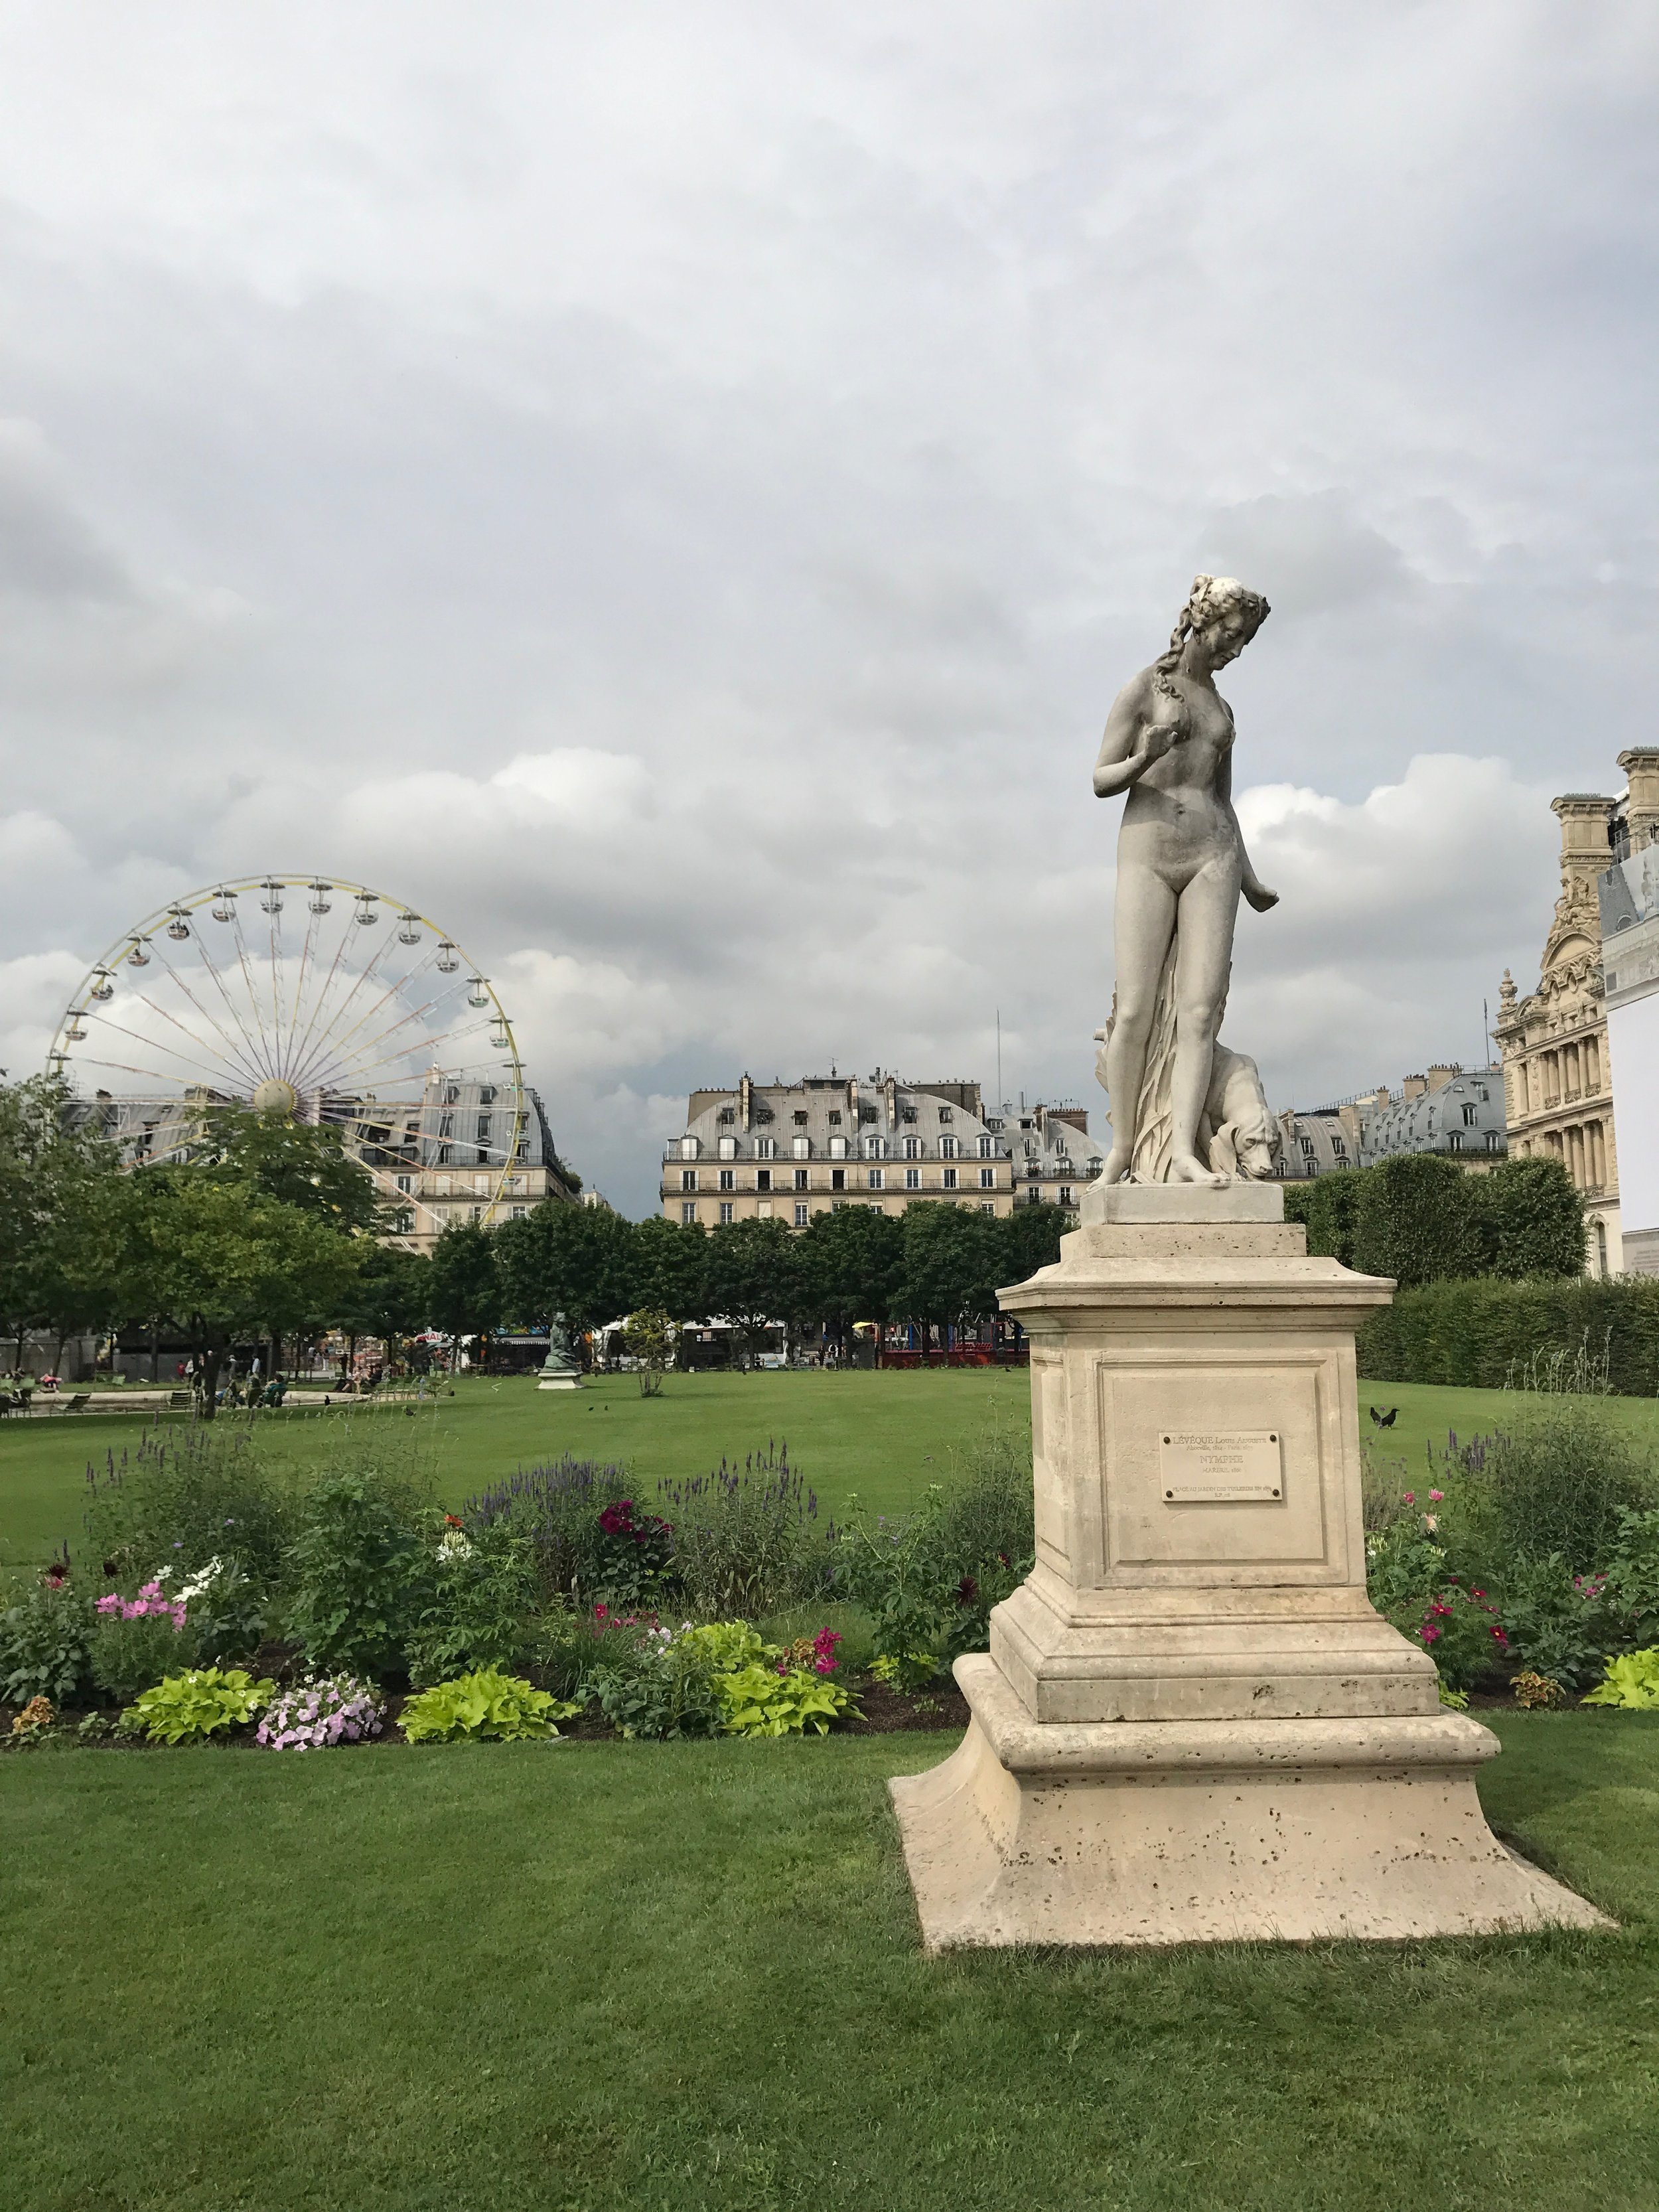 One of my favorite views of the Right Bank from The Tuileries.